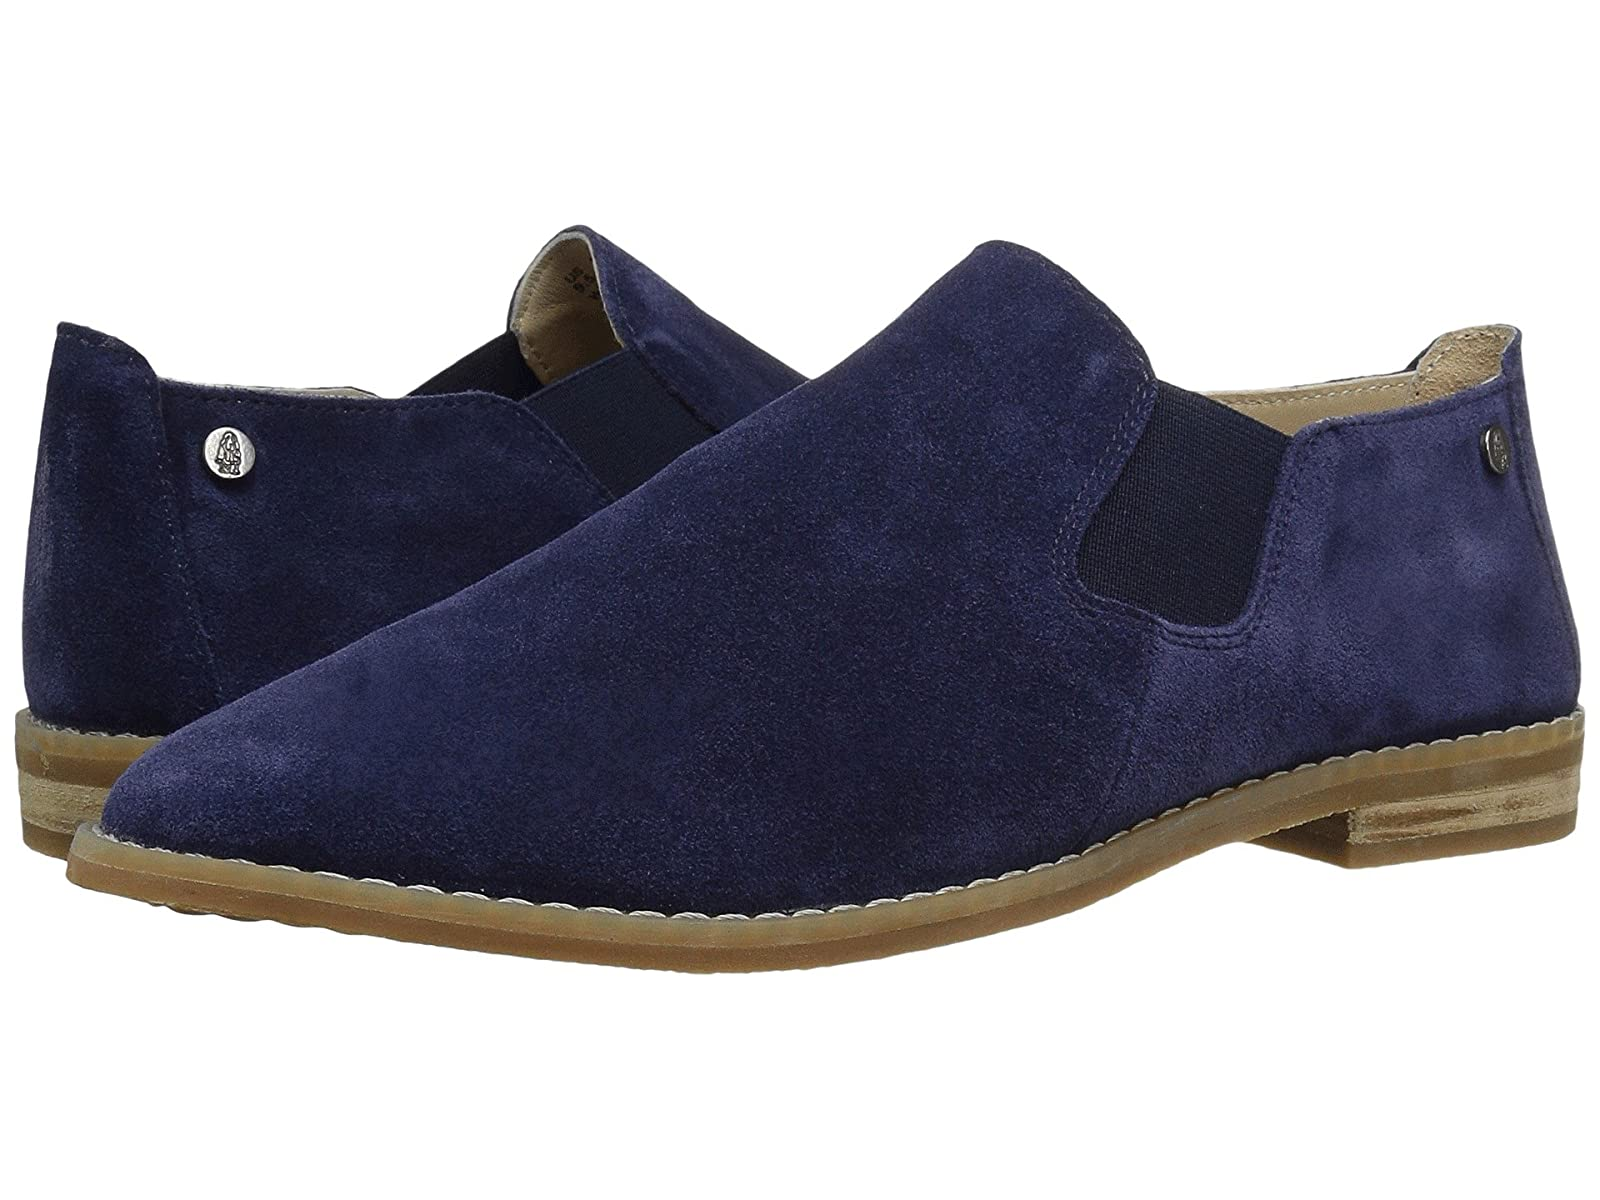 Hush Puppies Analise CleverCheap and distinctive eye-catching shoes